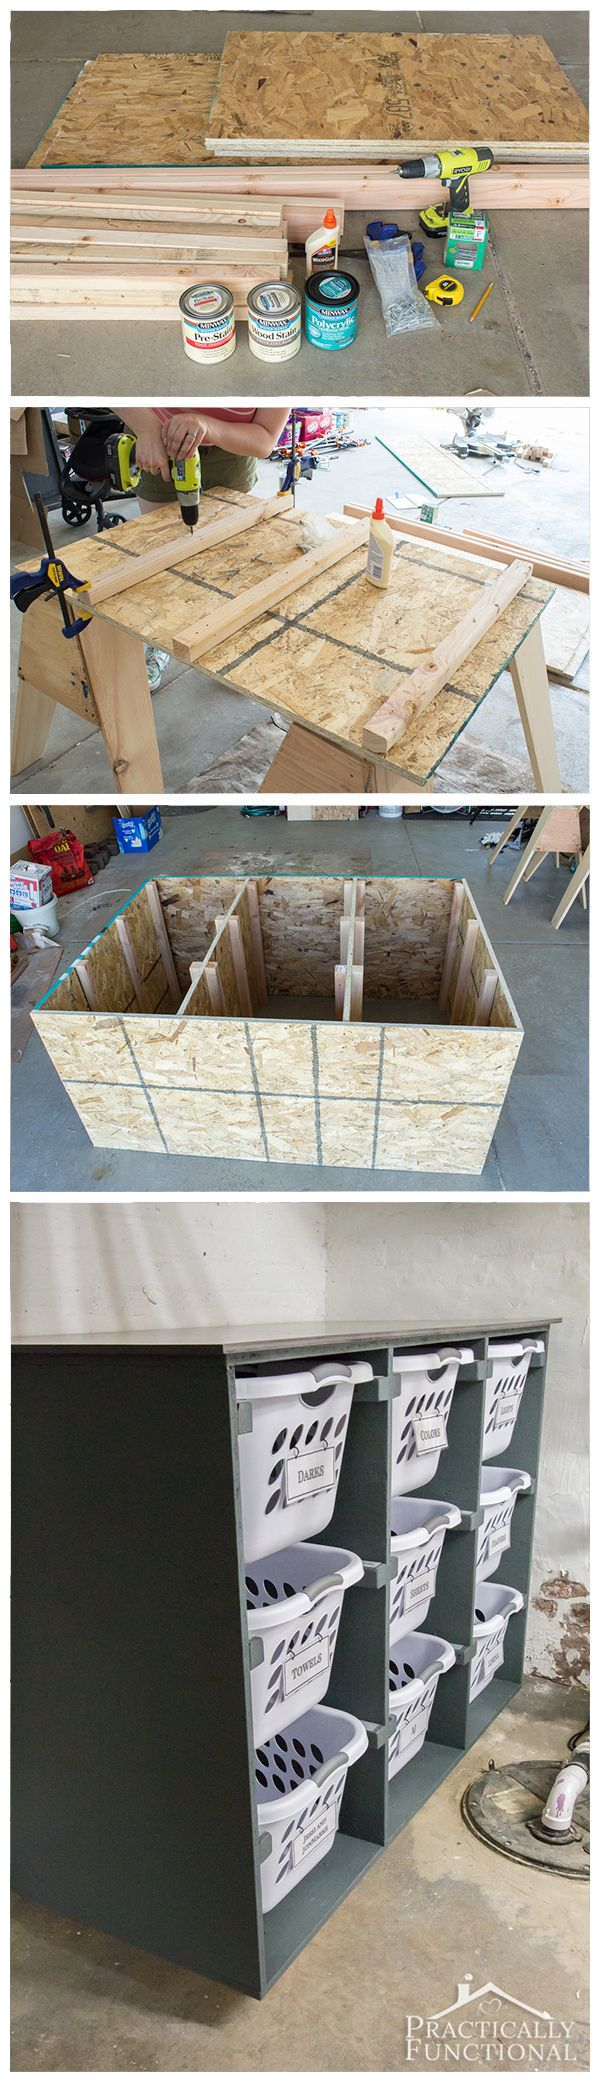 Build a simple DIY laundry basket dresser to help keep your laundry room organized